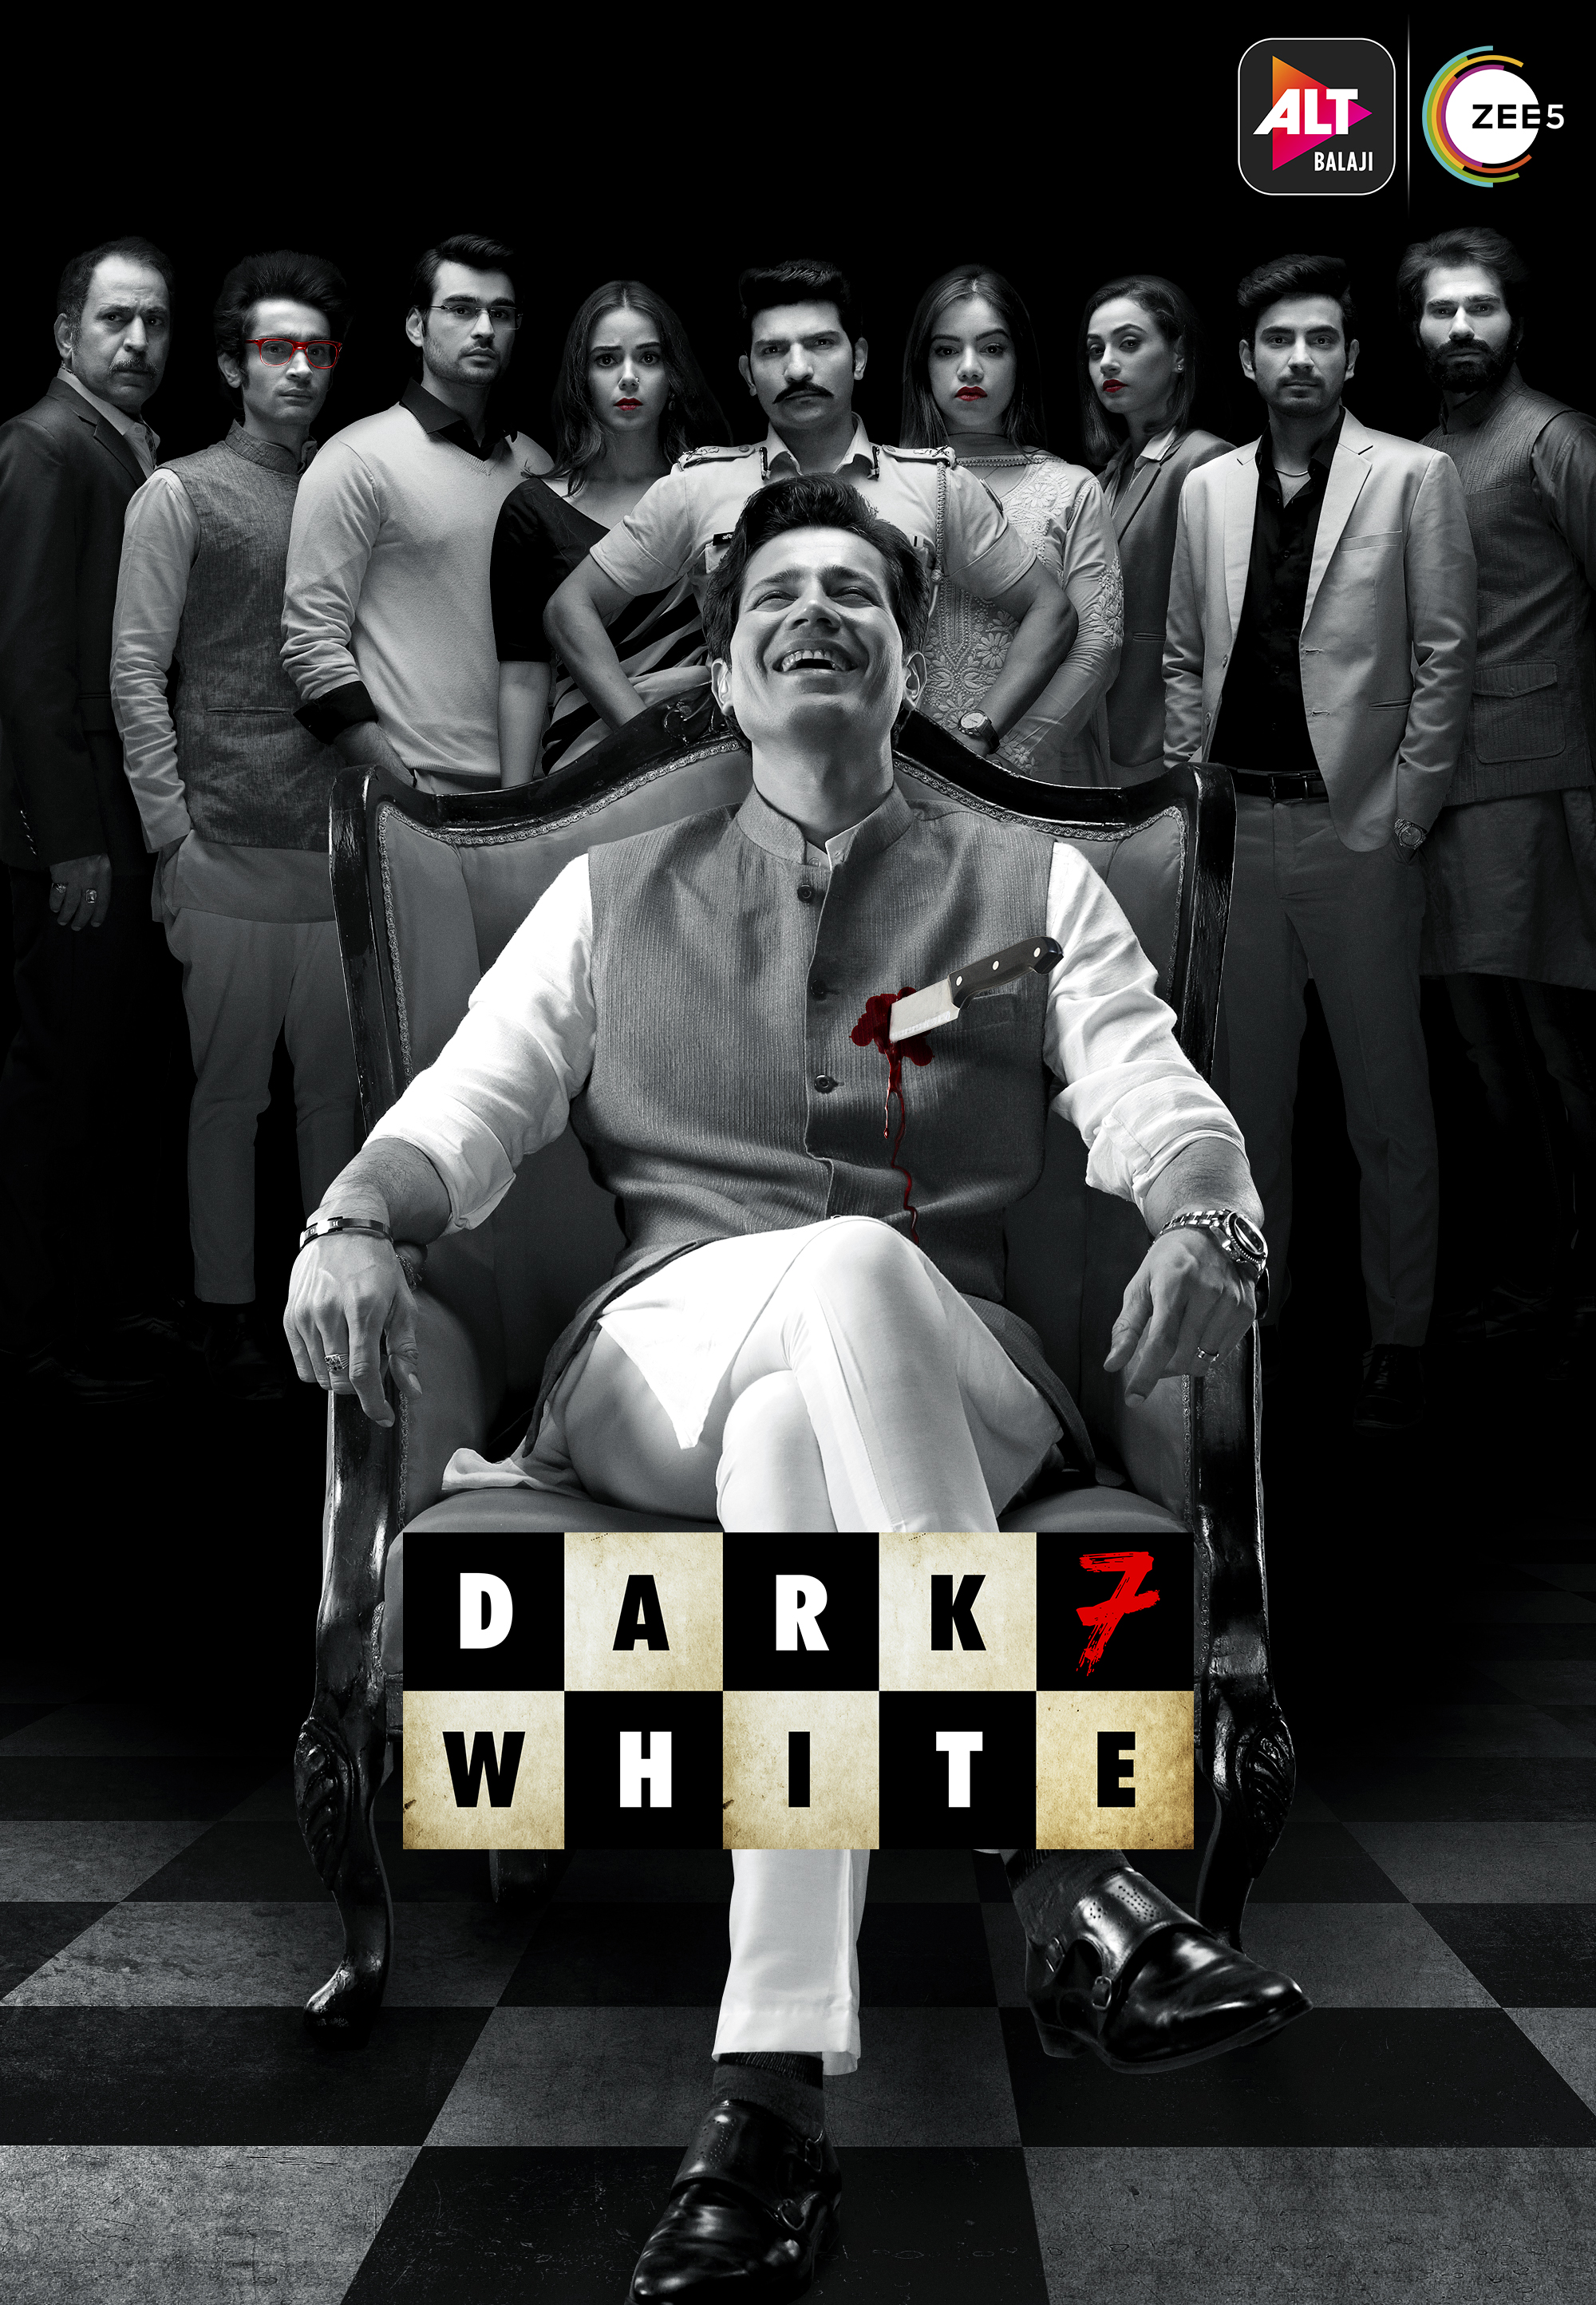 Dark 7 White 2020 S01 Hindi Complete ALTBalaji Original Web Series 720p HDRip 1.4GB x264 AAC